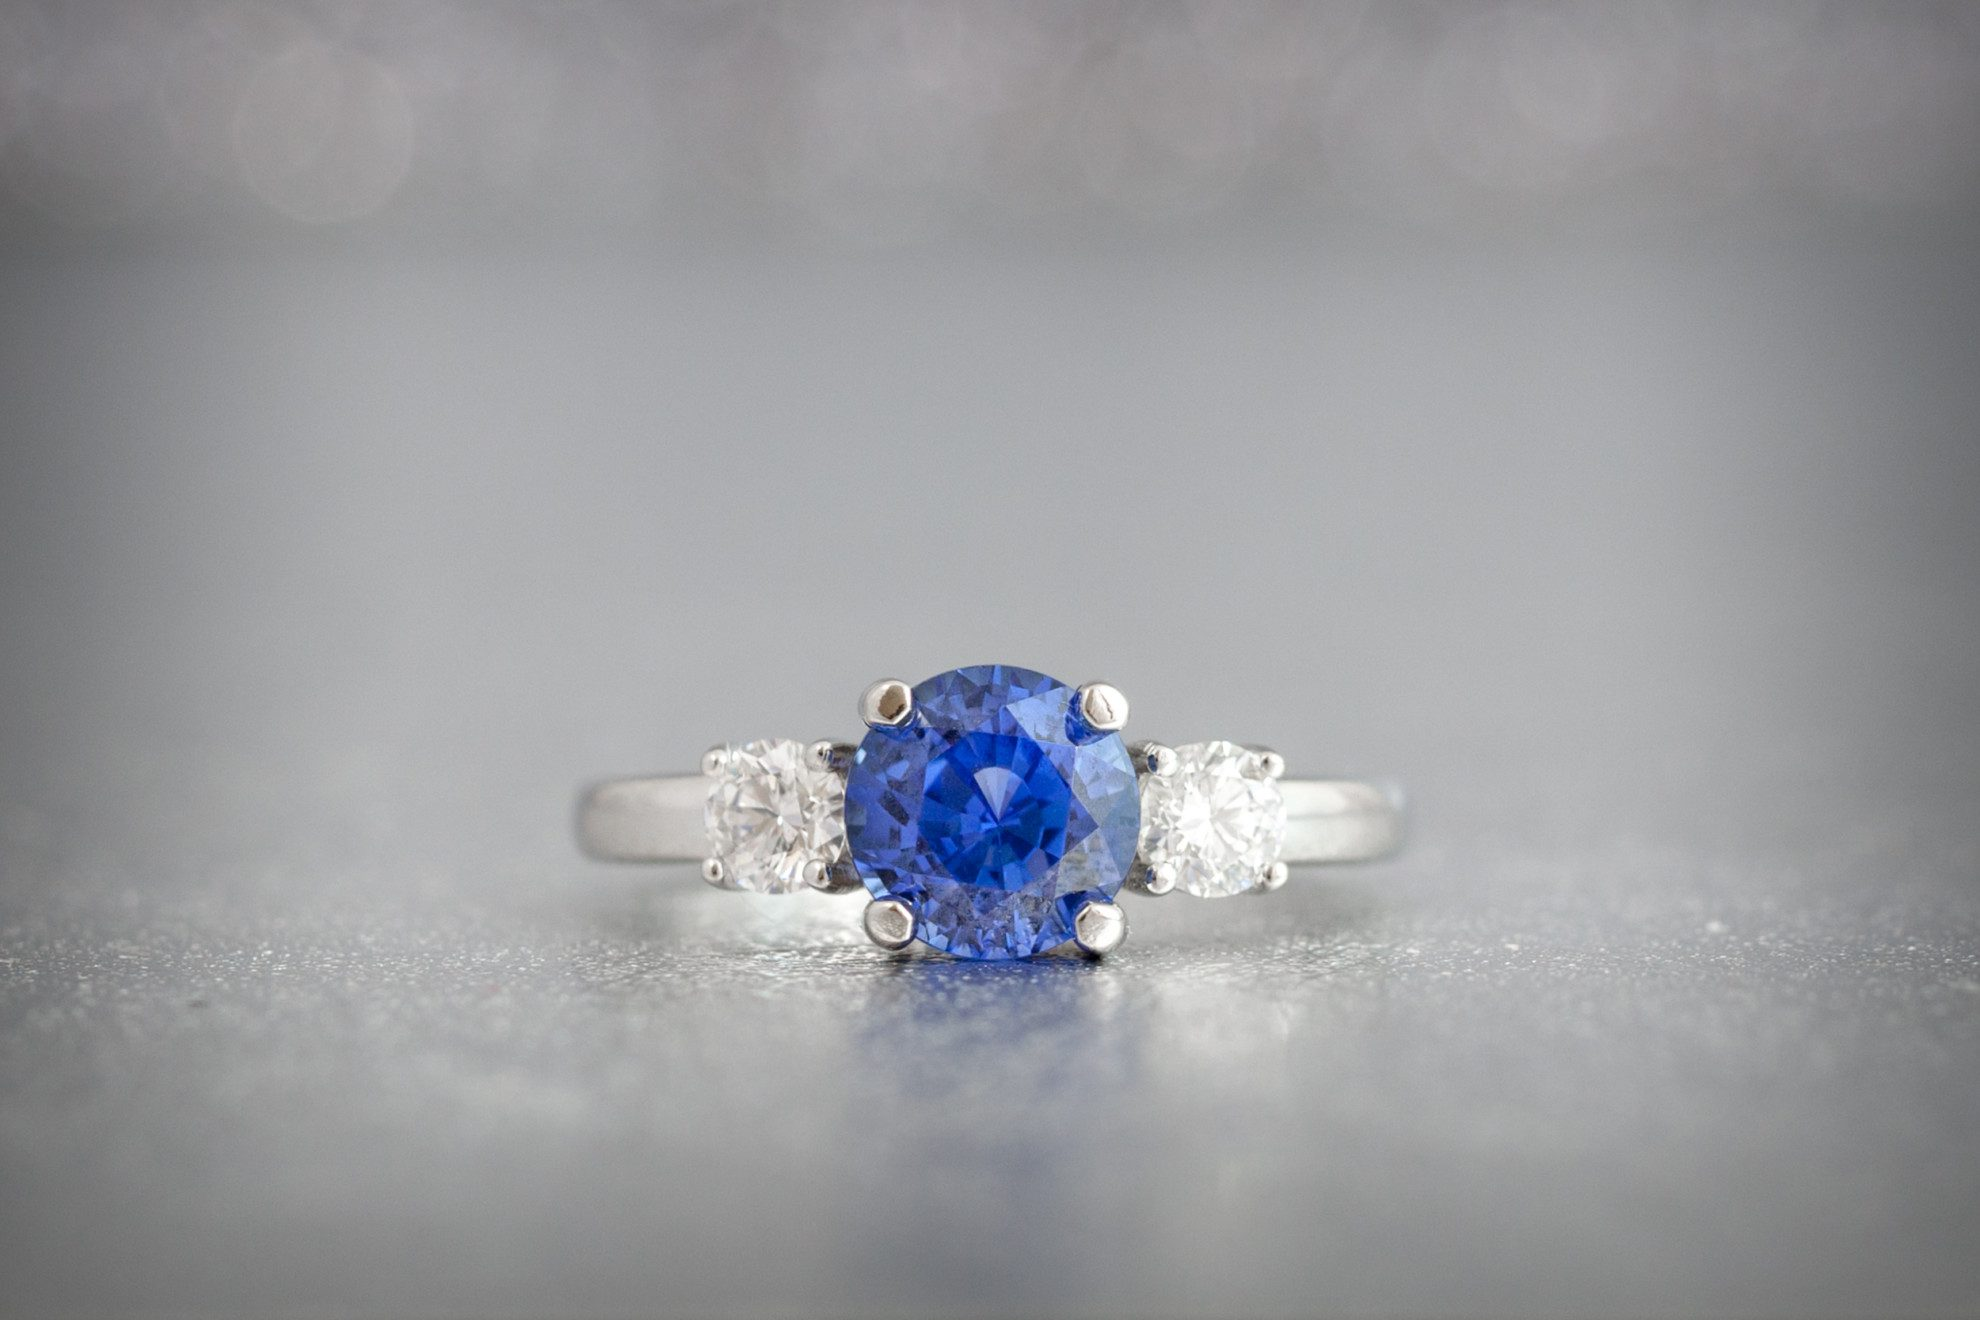 blog kate the rings ring of colored engagement sapphire appeal colorful